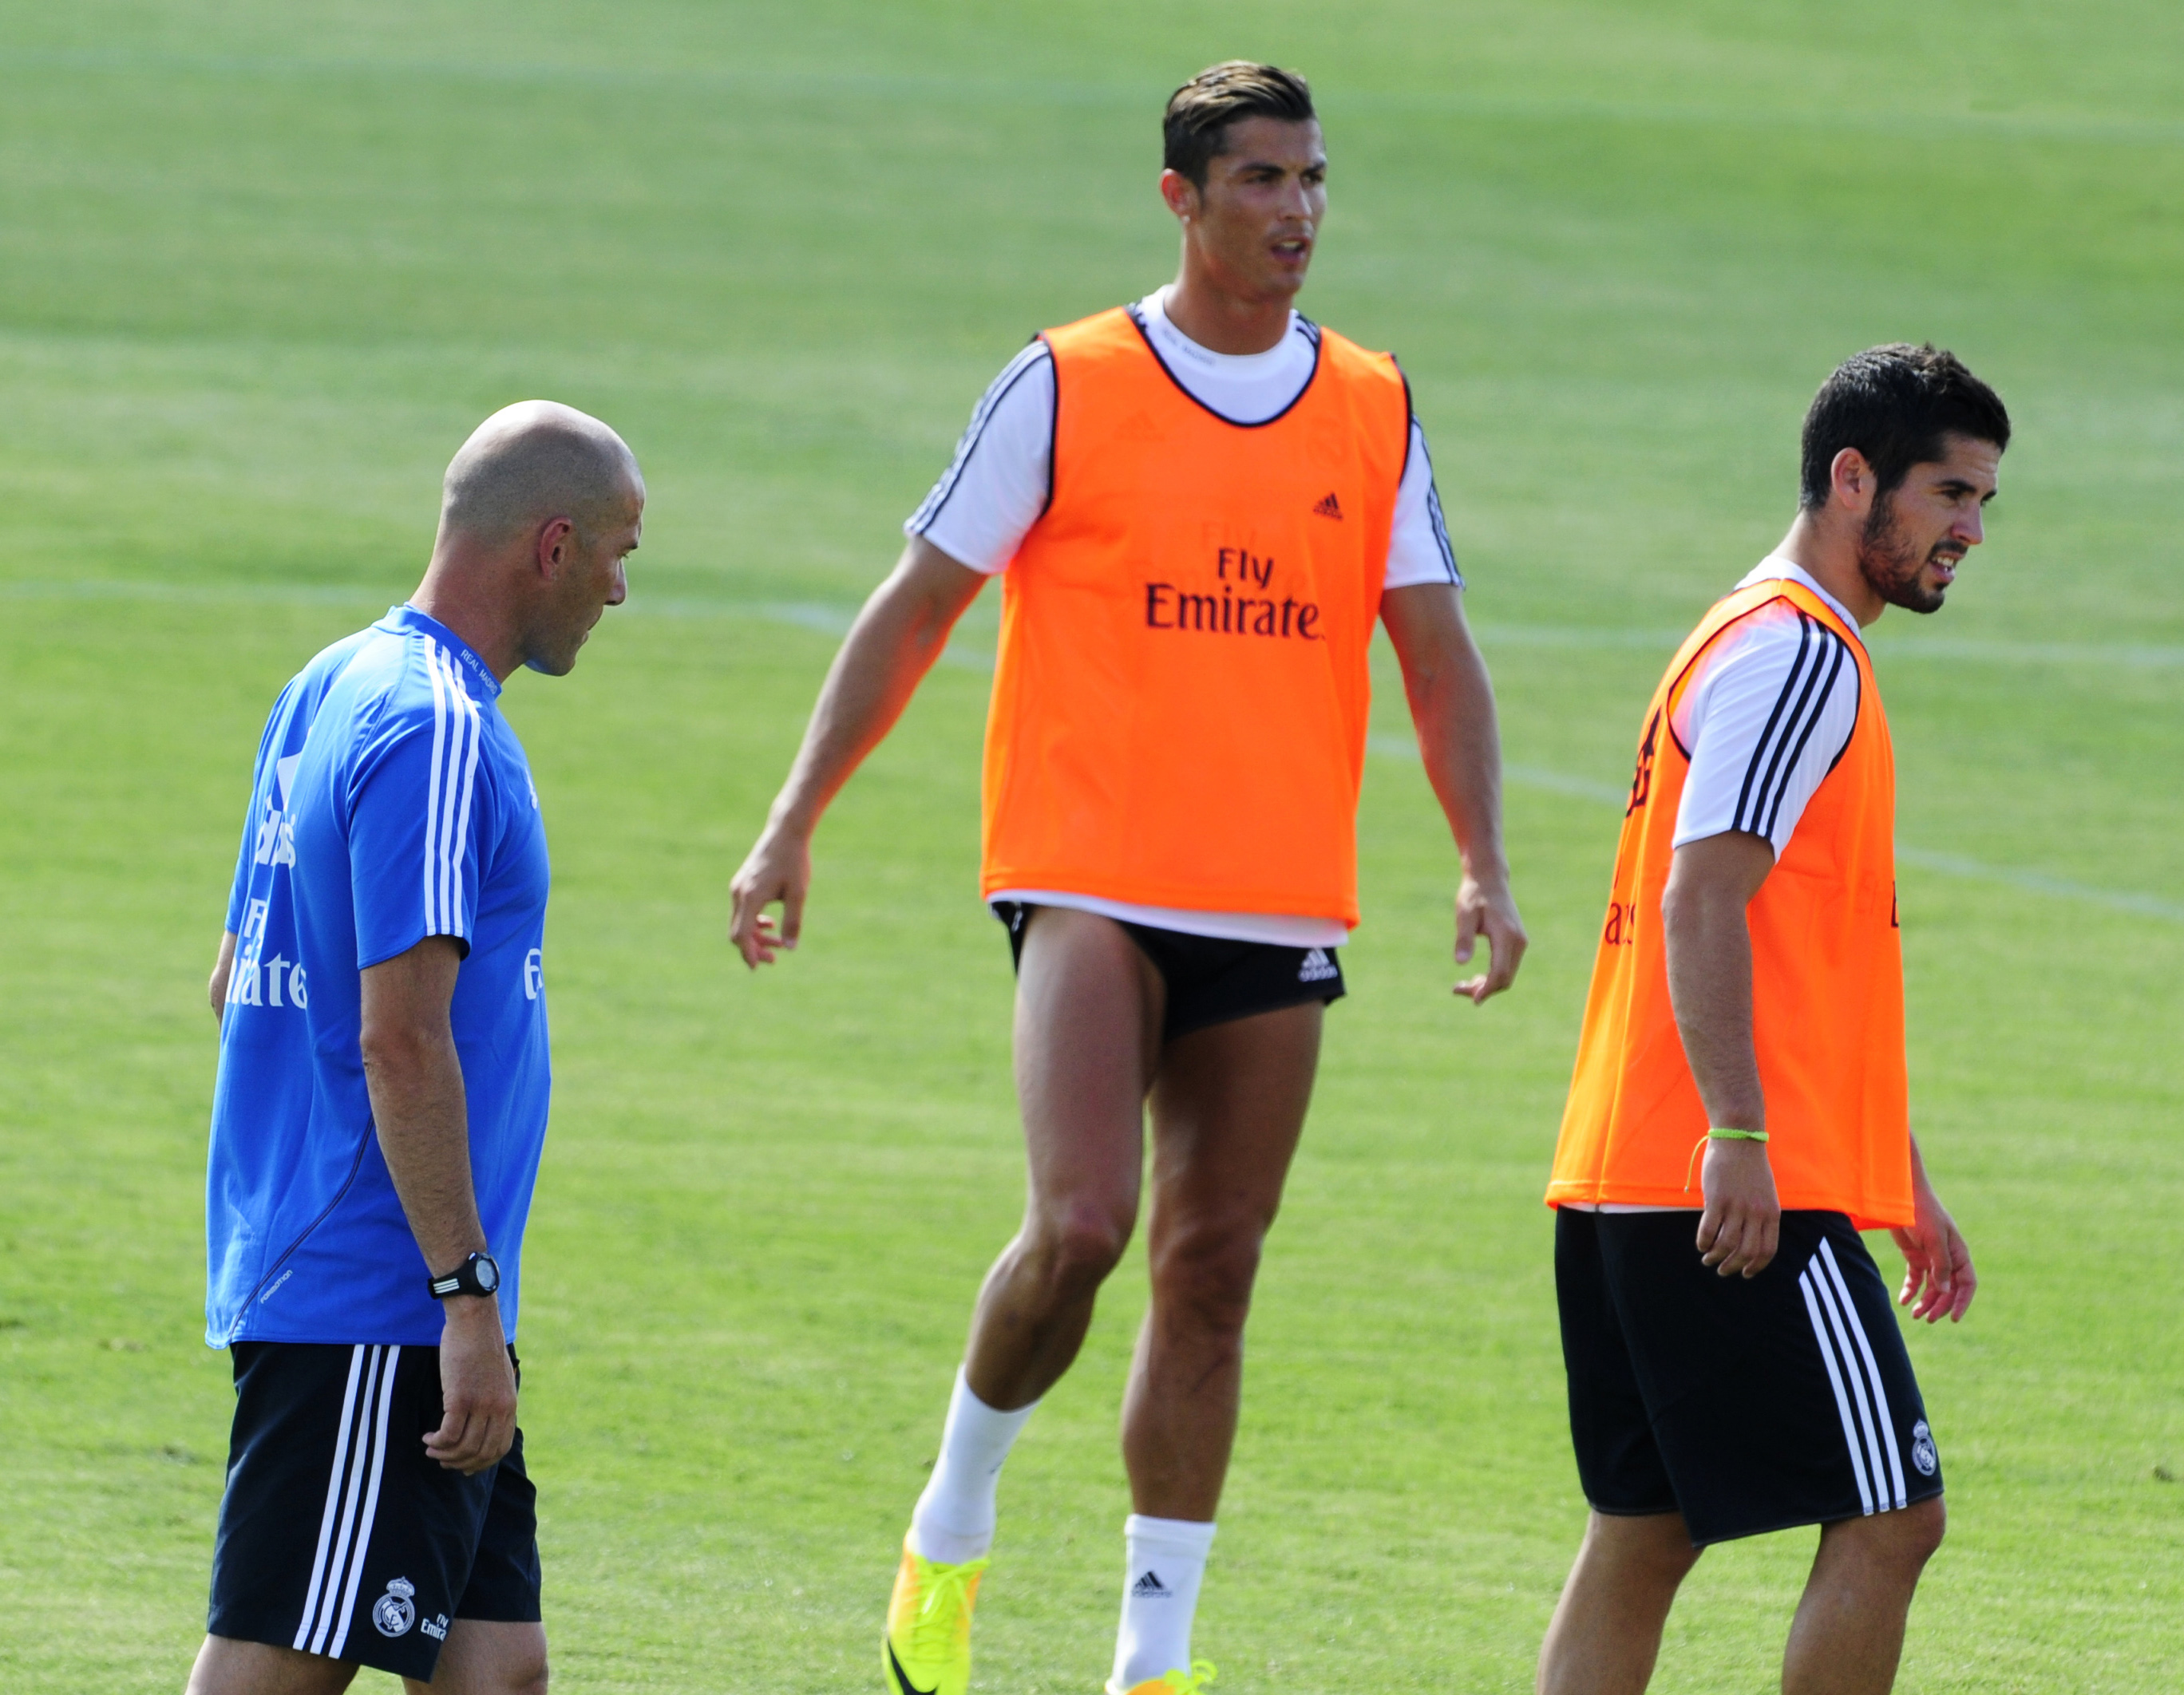 (L-R) Real Madrid's French assistant coach Zinedine Zidane, Real Madrid's Portuguese forward Cristiano Ronaldo and Real Madrid's midfielder Isco take part in the first pre-season training session at the Valdebebas training ground in Madrid on July 15, 2013.  AFP PHOTO / DOMINIQUE FAGET        (Photo credit should read )